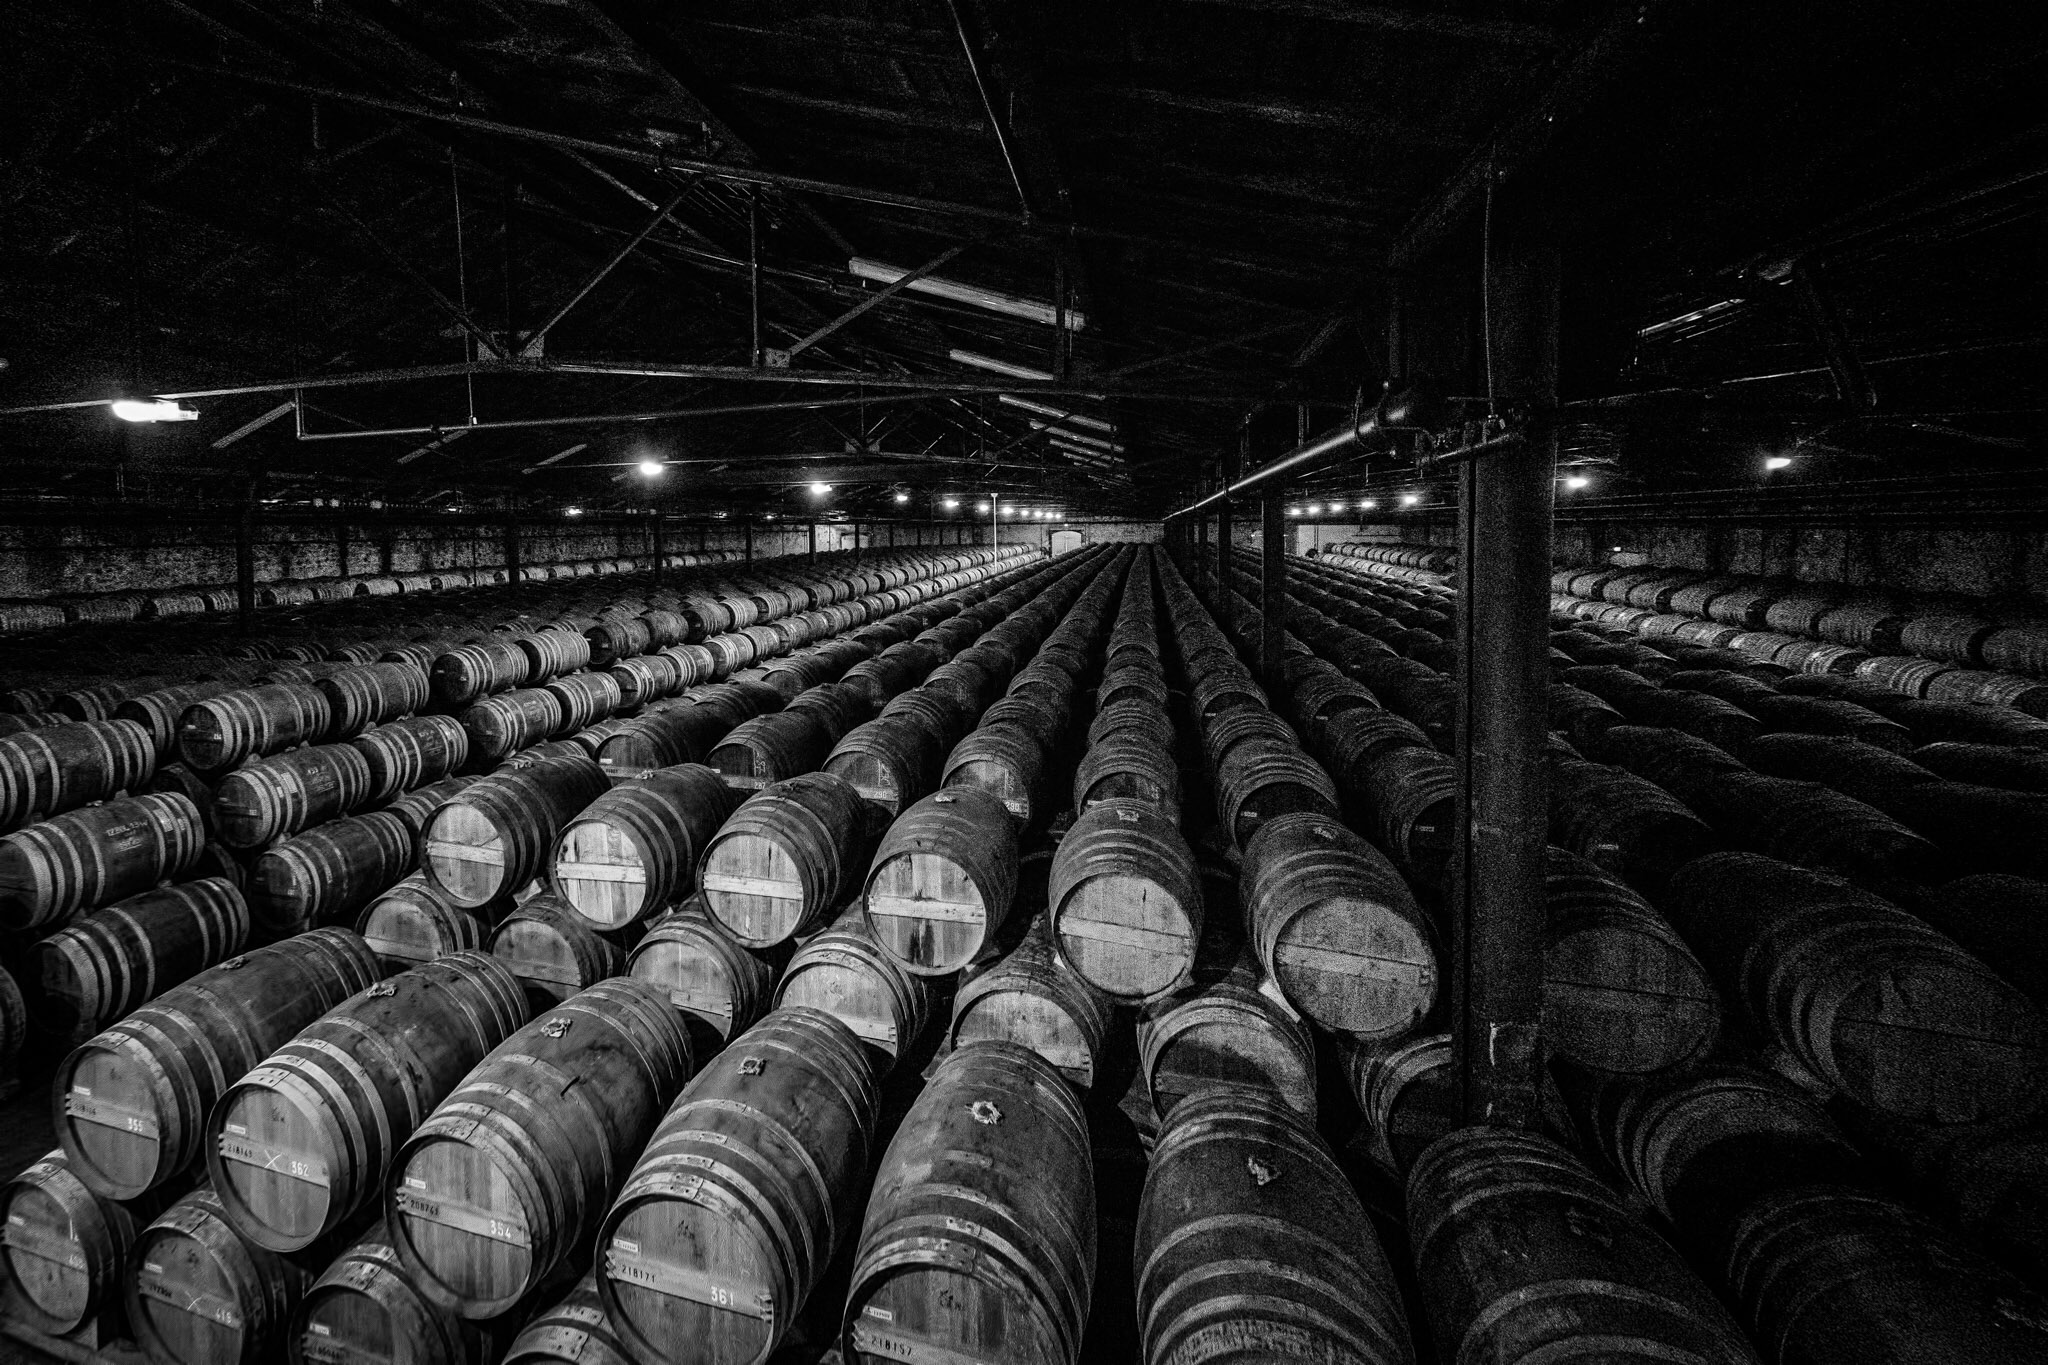 Barrels, Remy Martin, Cognac, France by Rick McEvoy industrial photographer